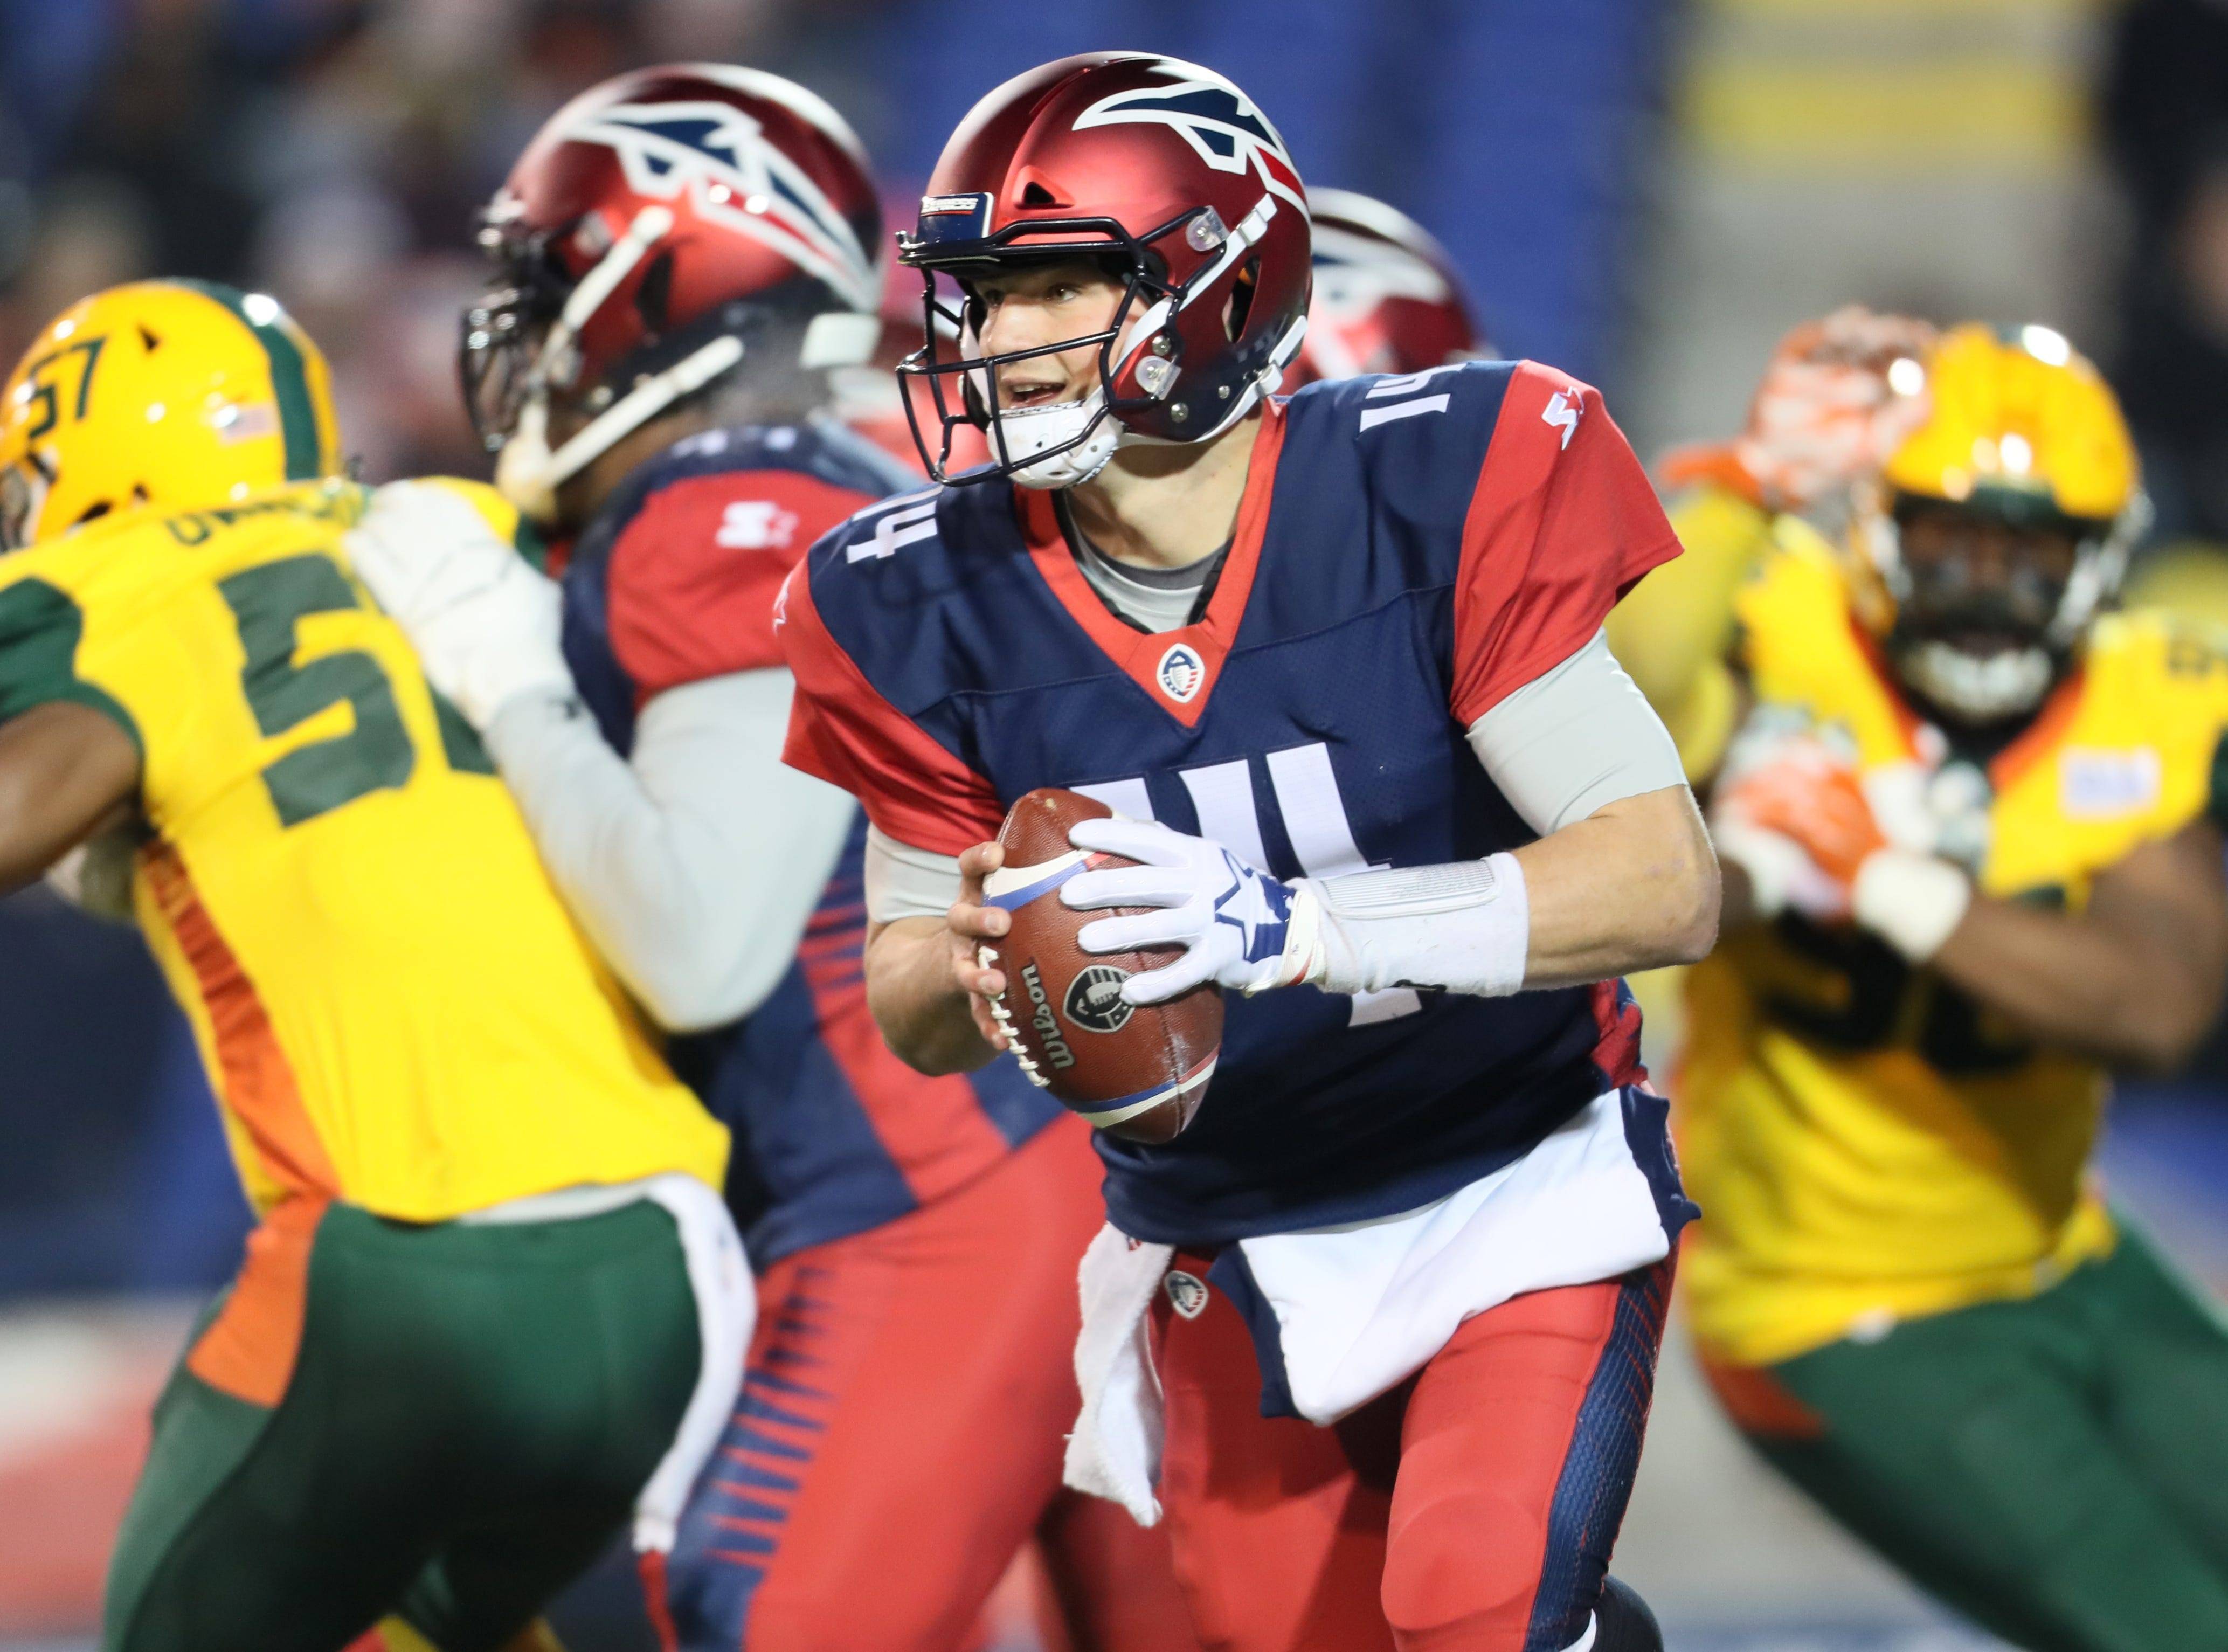 Memphis Express quarterback Christian Hackenberg scrambles out of the pocket against the Arizona Hotshots defense during their game at the Liberty Bowl on Saturday, Feb. 16, 2019.